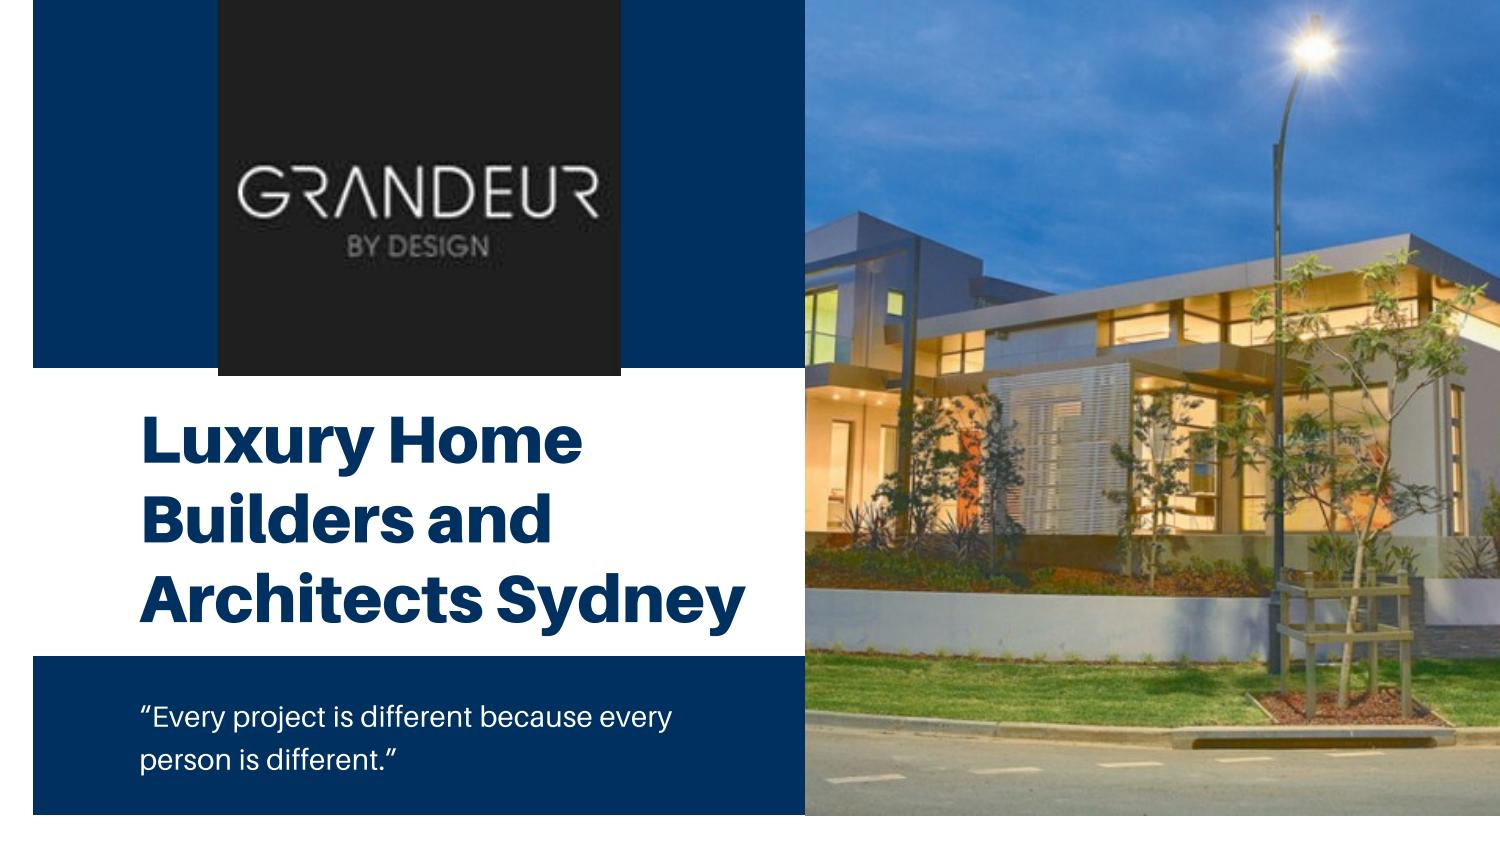 Luxury Home Builders And Architects Sydney Grandeur By Design By Grandeur By Design Issuu